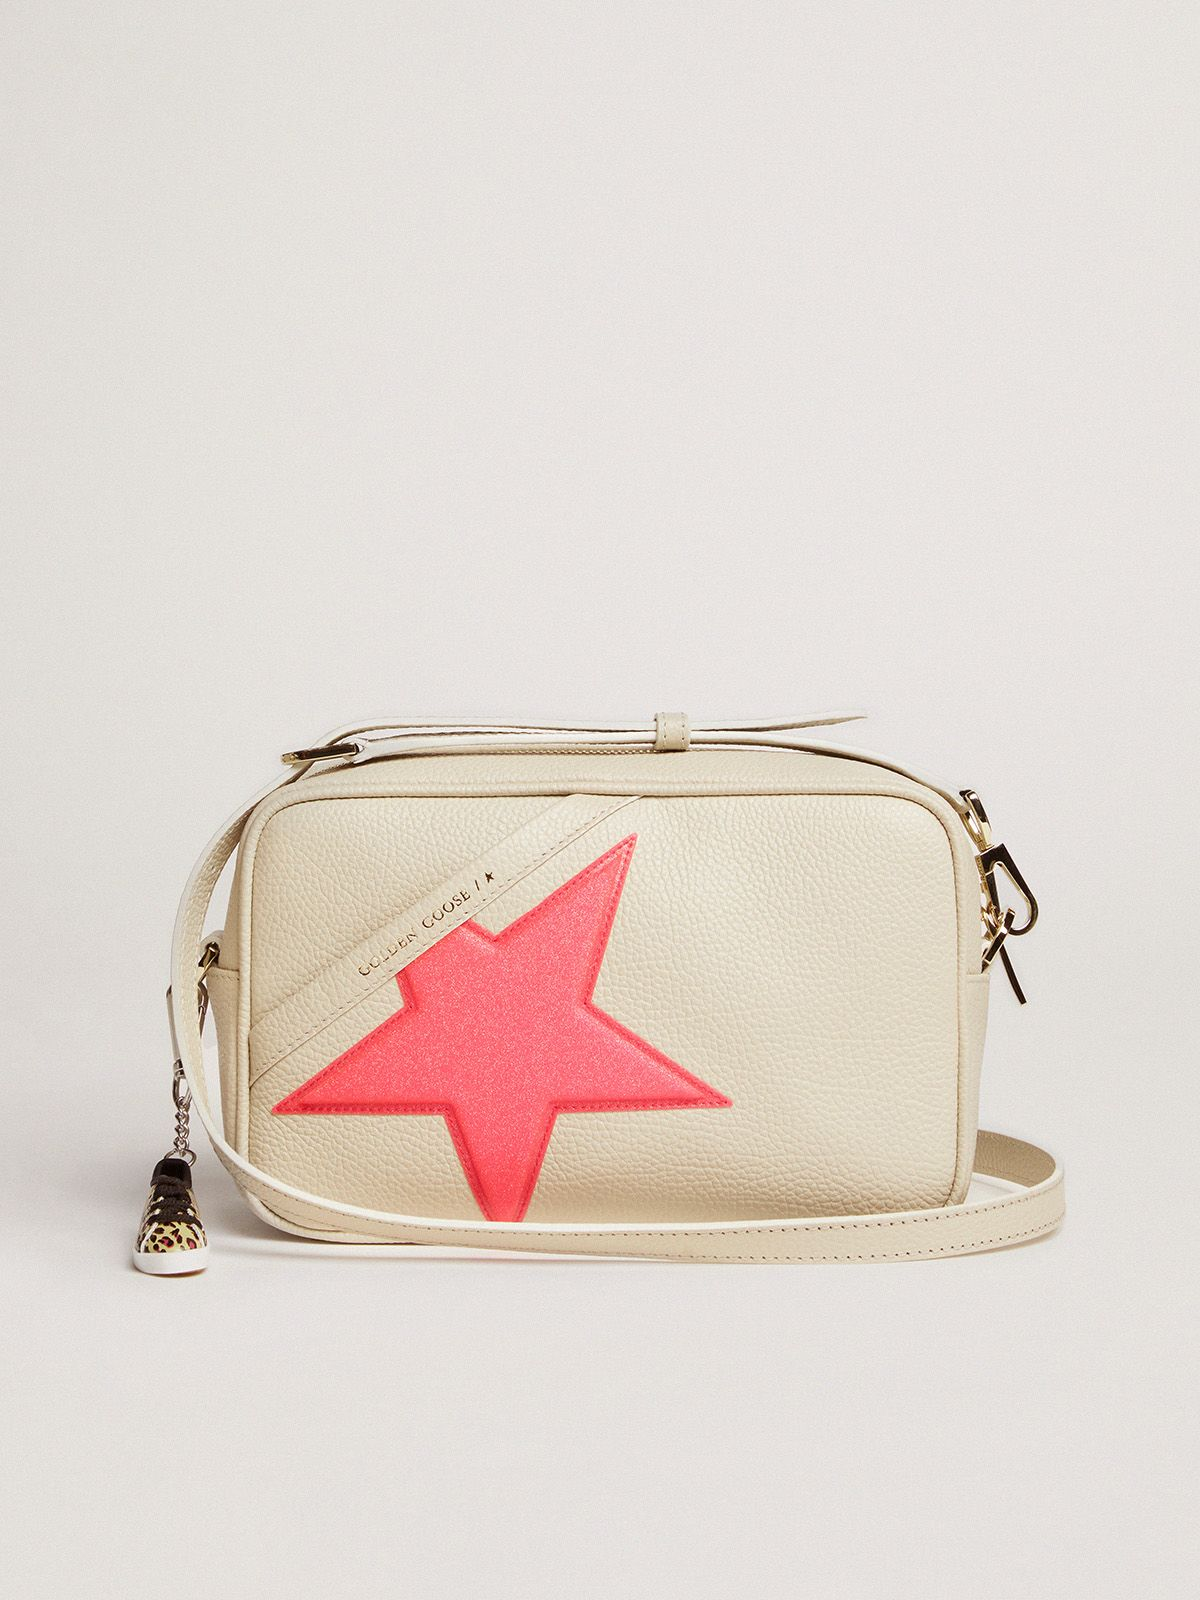 Off-white Star Bag in hammered leather, fuchsia Golden Goose star with iridescent glitter